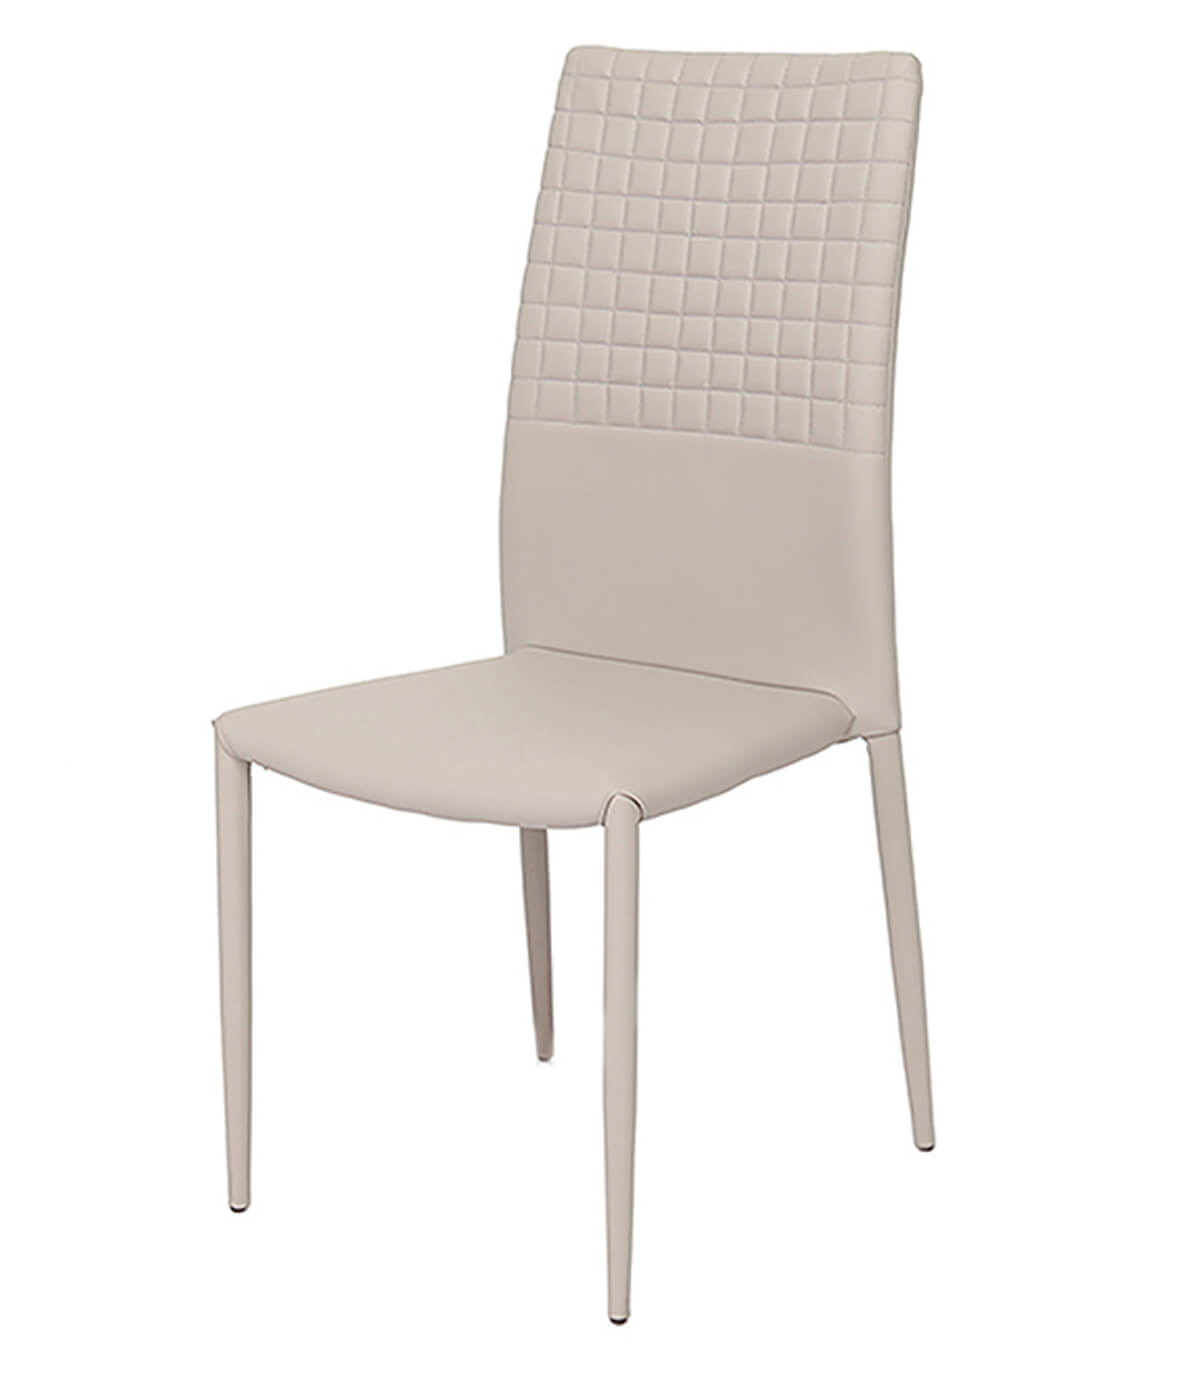 Cuba Mink Grey Modern Faux Leather Dining Chair